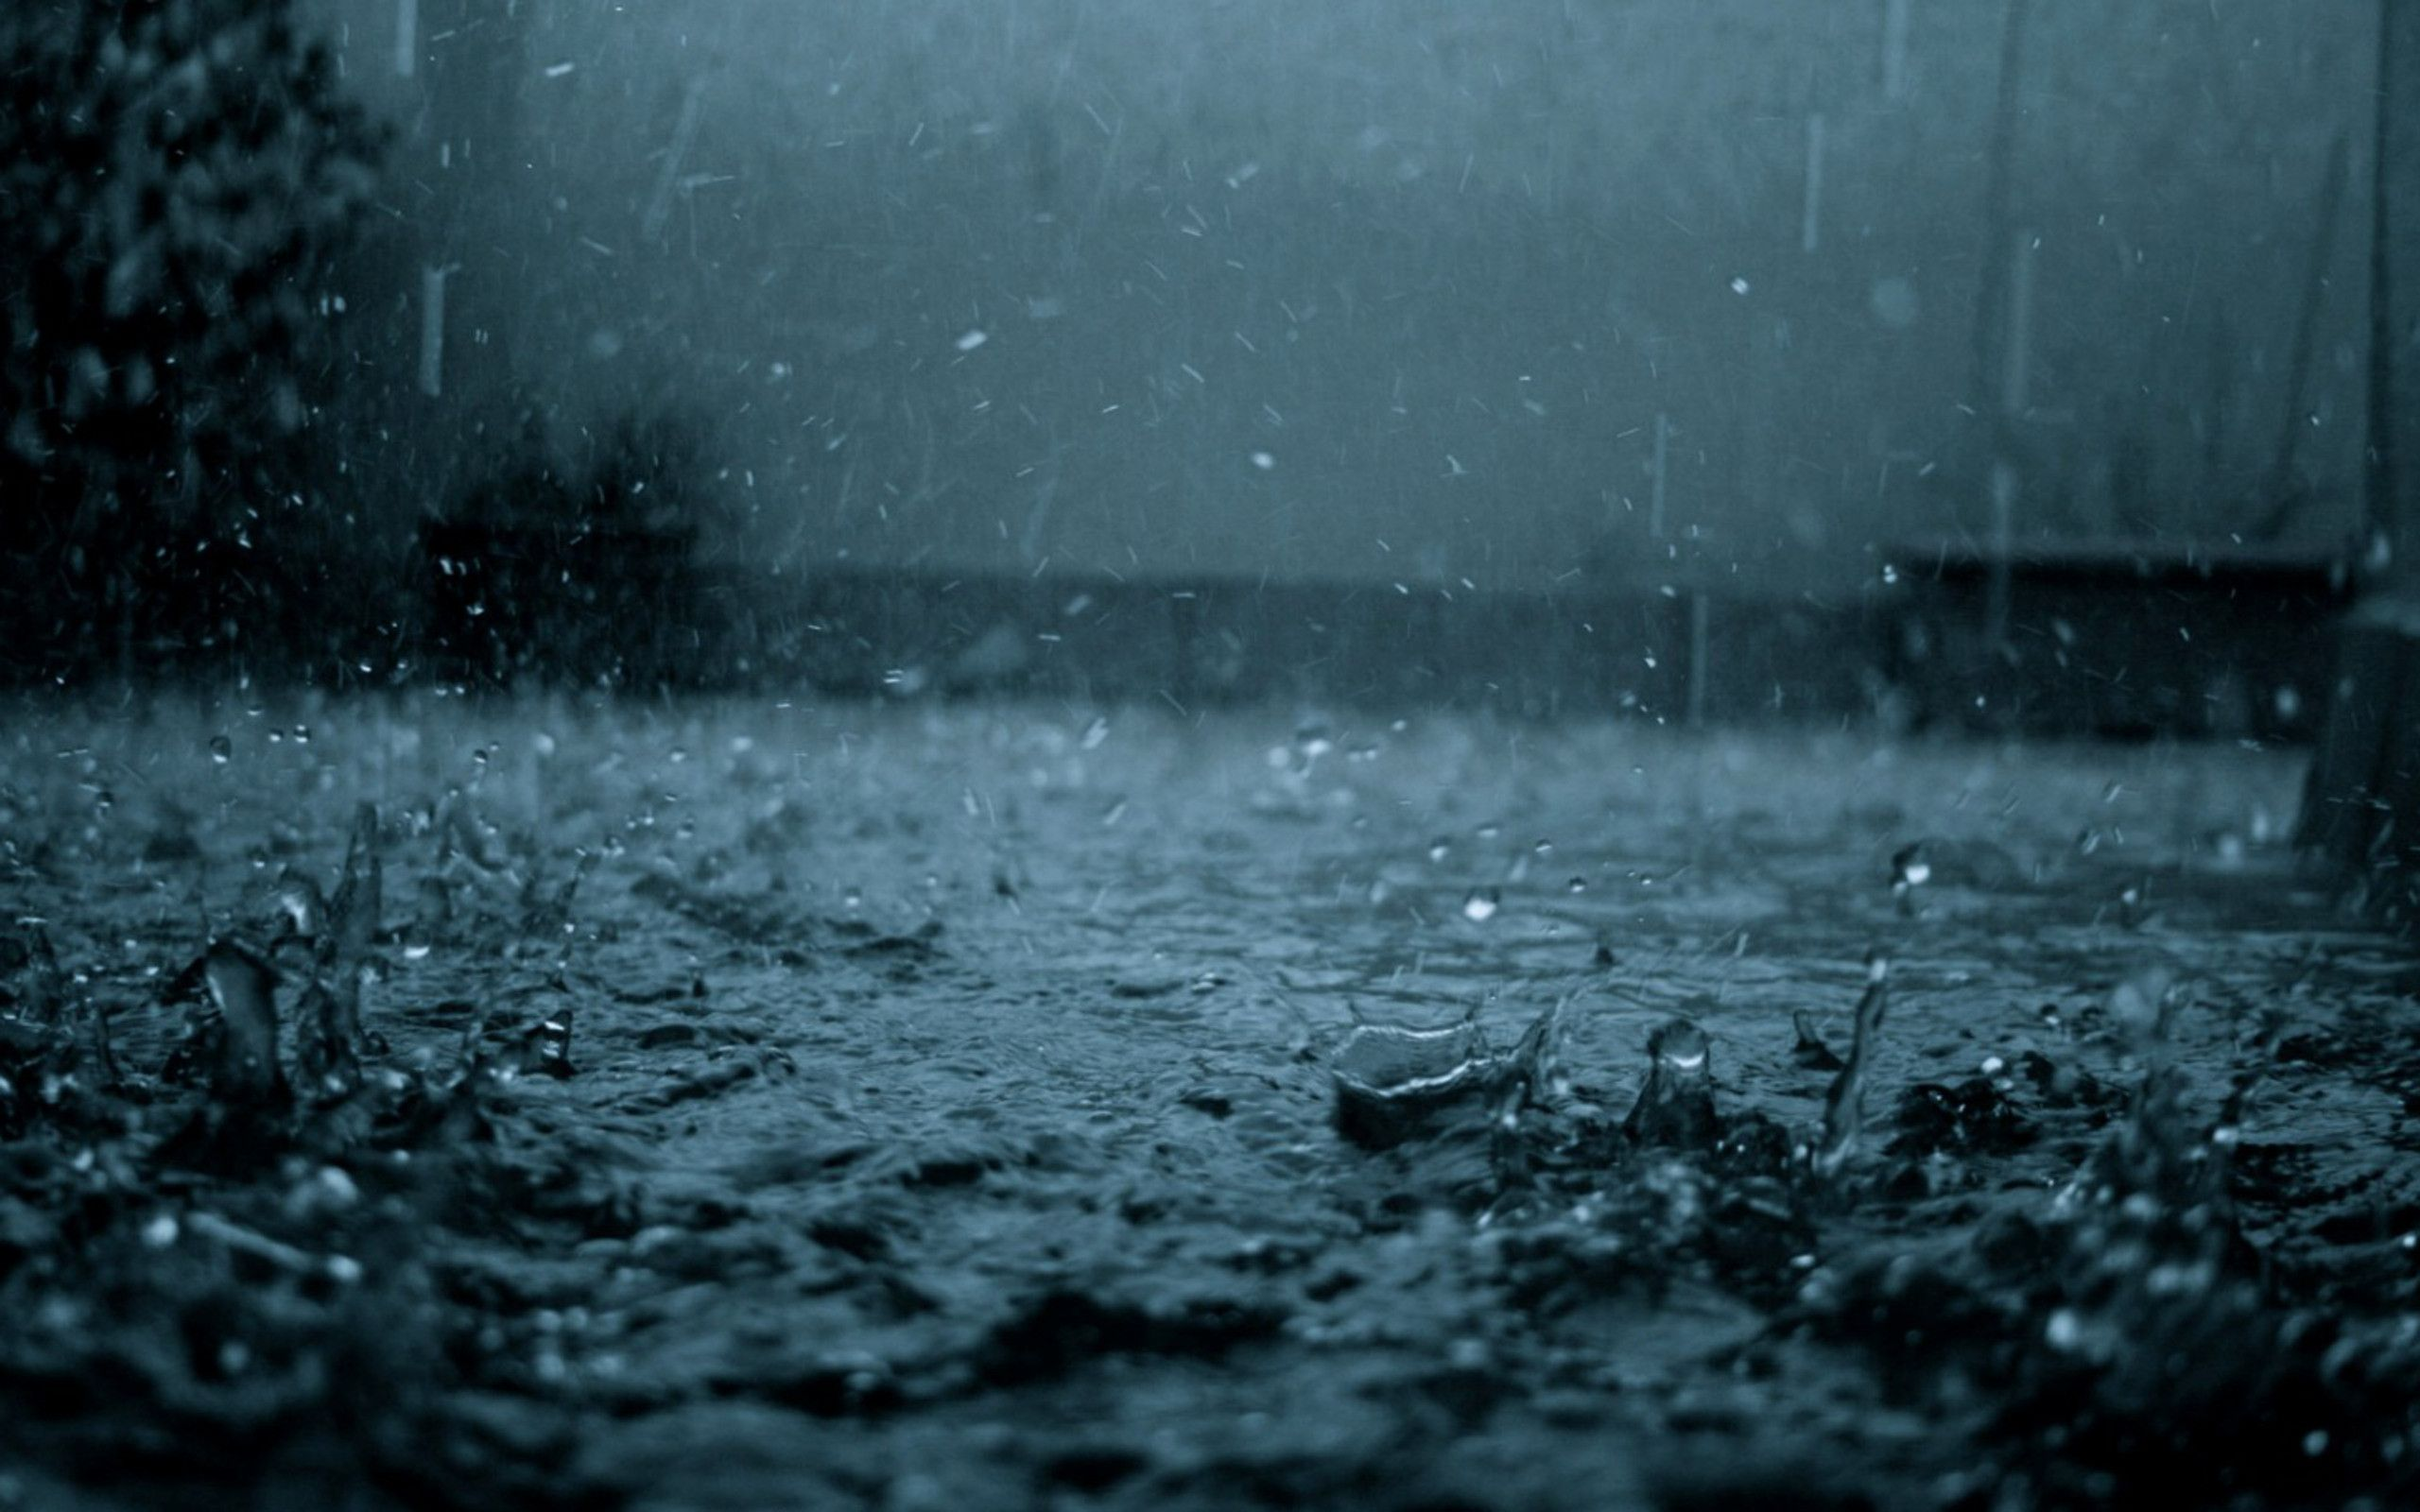 Rain Drops On Water Close Up Misc Stuff Wallpapers Hd Wallpaper Download For Ipad And Iphone Wid Rain Wallpapers Rain Water Collection Dancing In The Rain